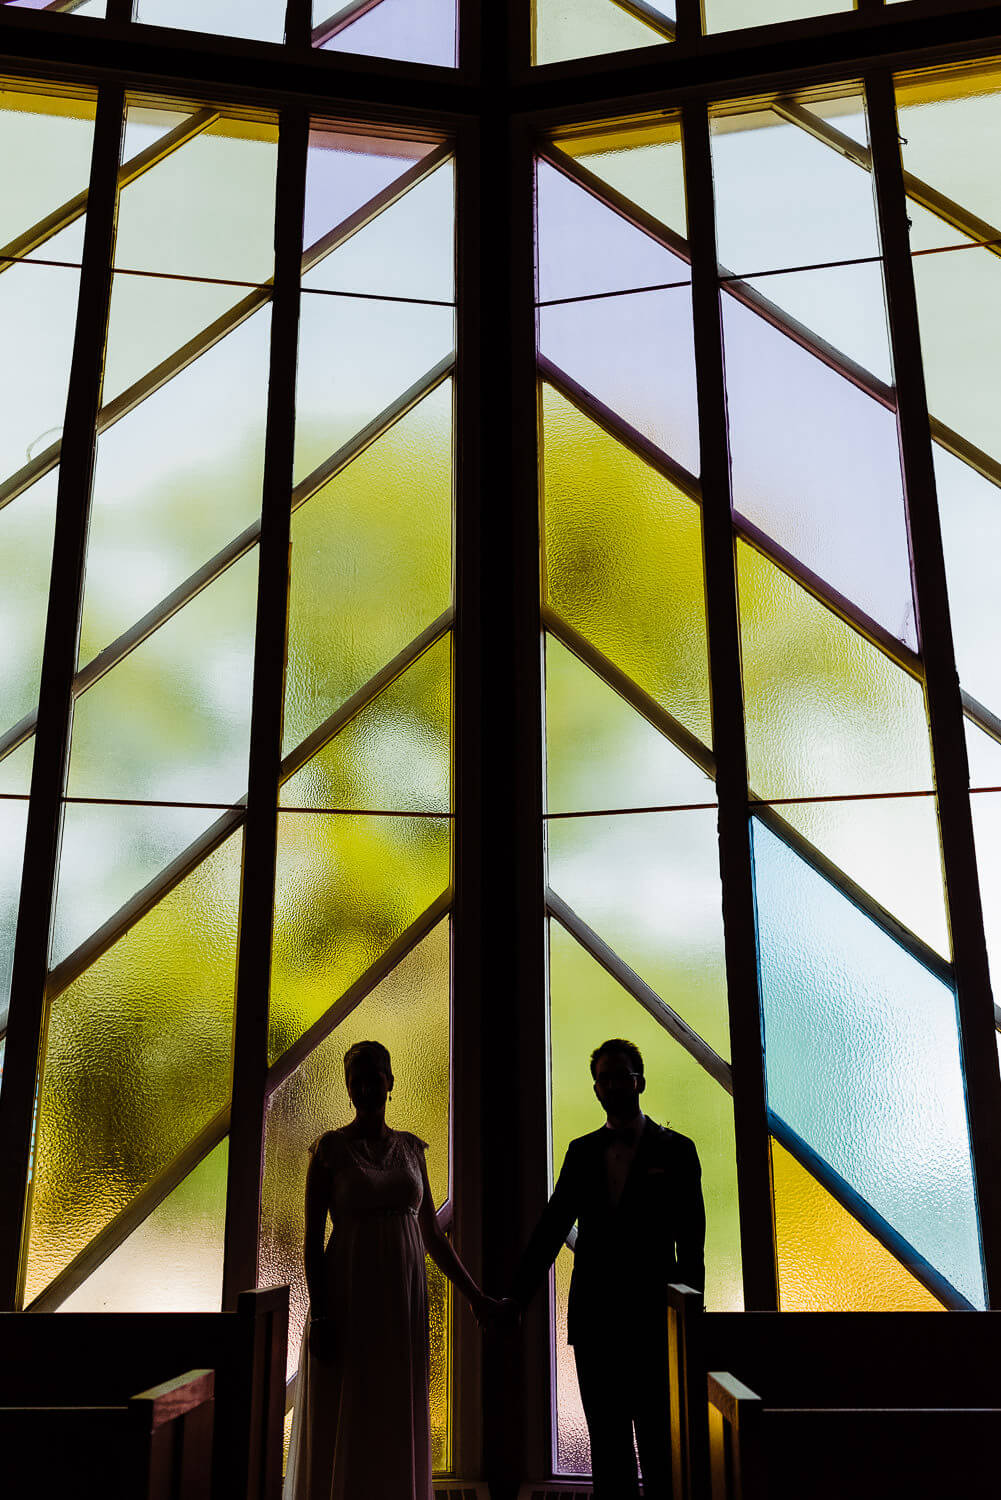 silhoutte of man and woman standing in front of stained glass window in church